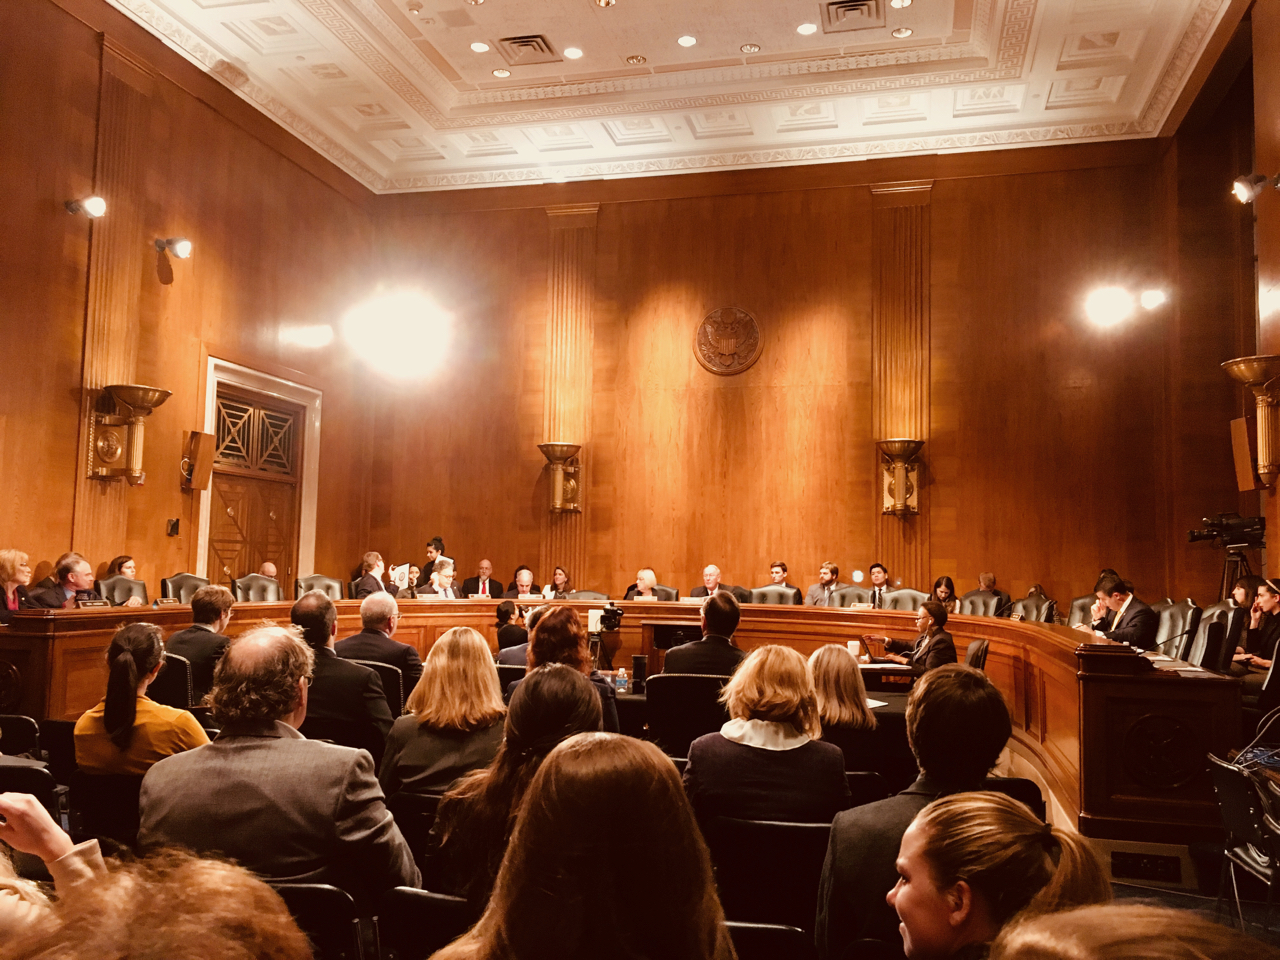 Senate Committee hearing